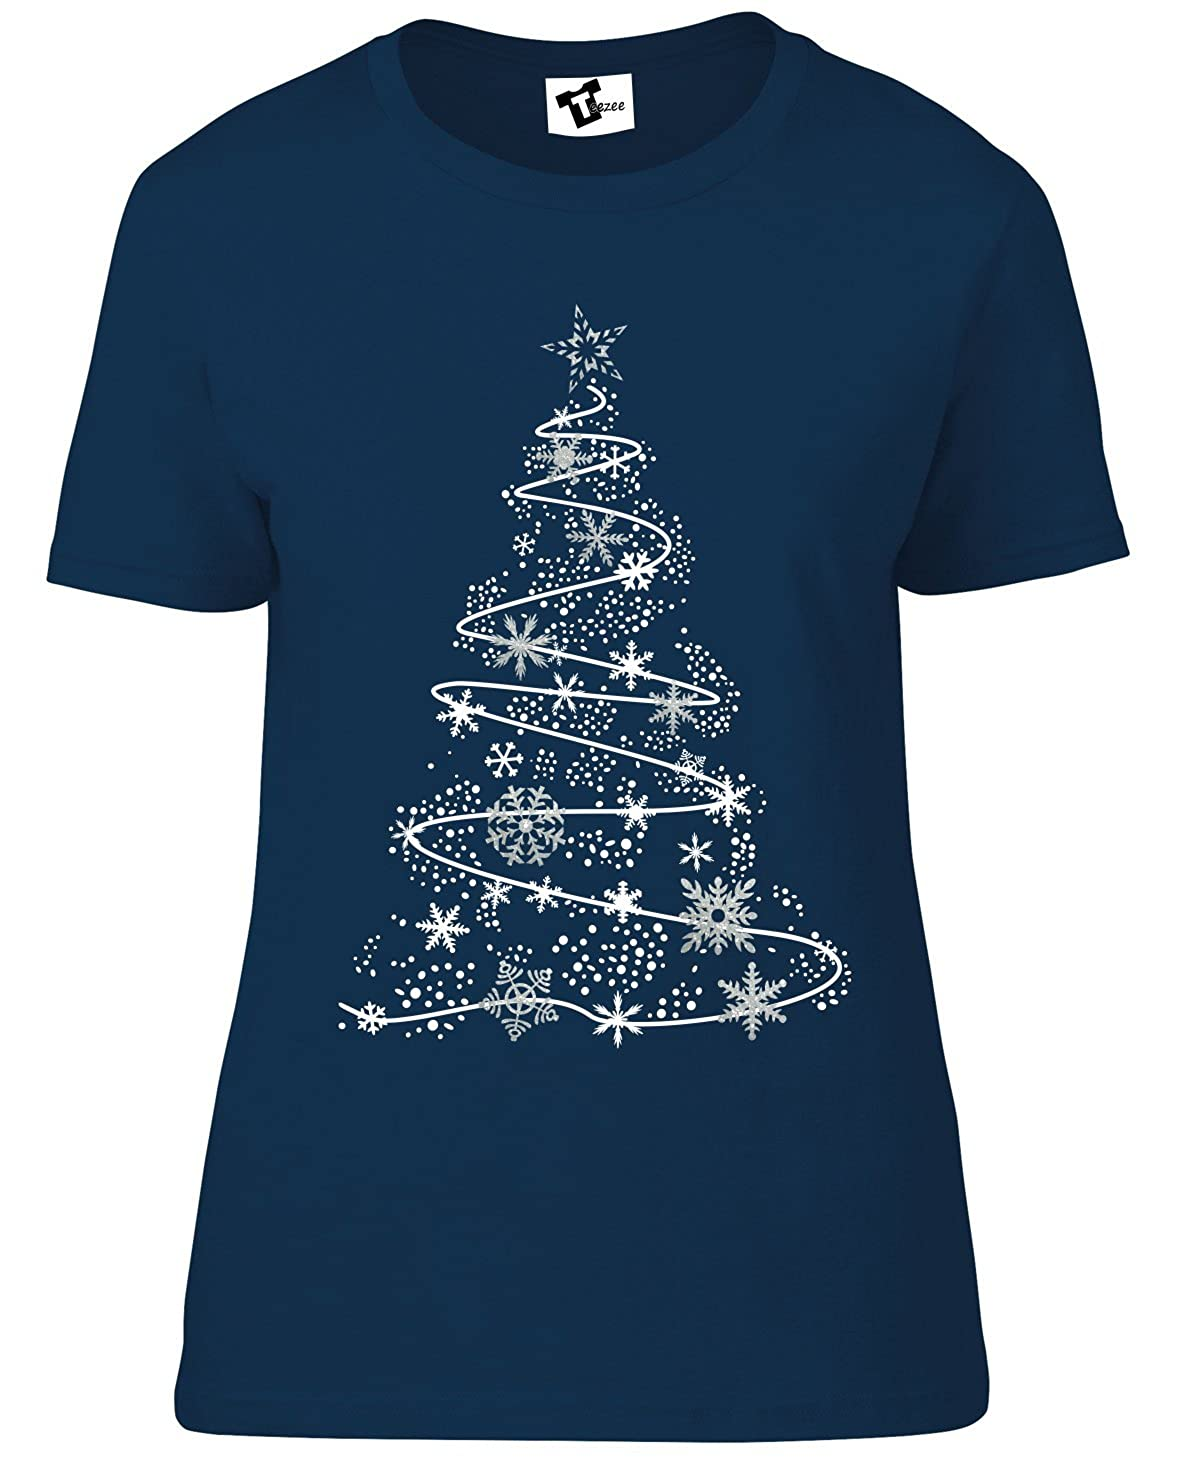 964efa07b57 Teezee Snowflake Christmas Tree T-Shirt - Women's